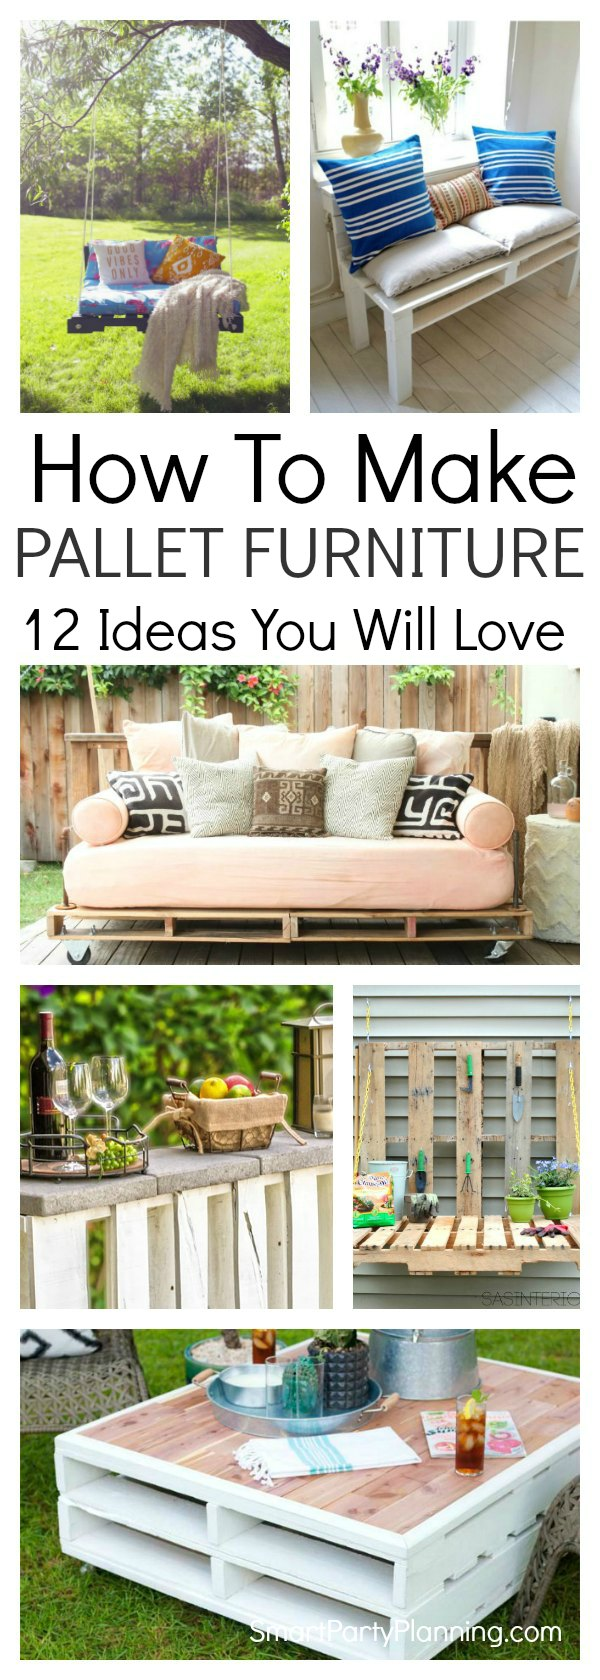 Learn How To Make Awesome Pallet Furniture Ideas With These Simple Step By Tutorials